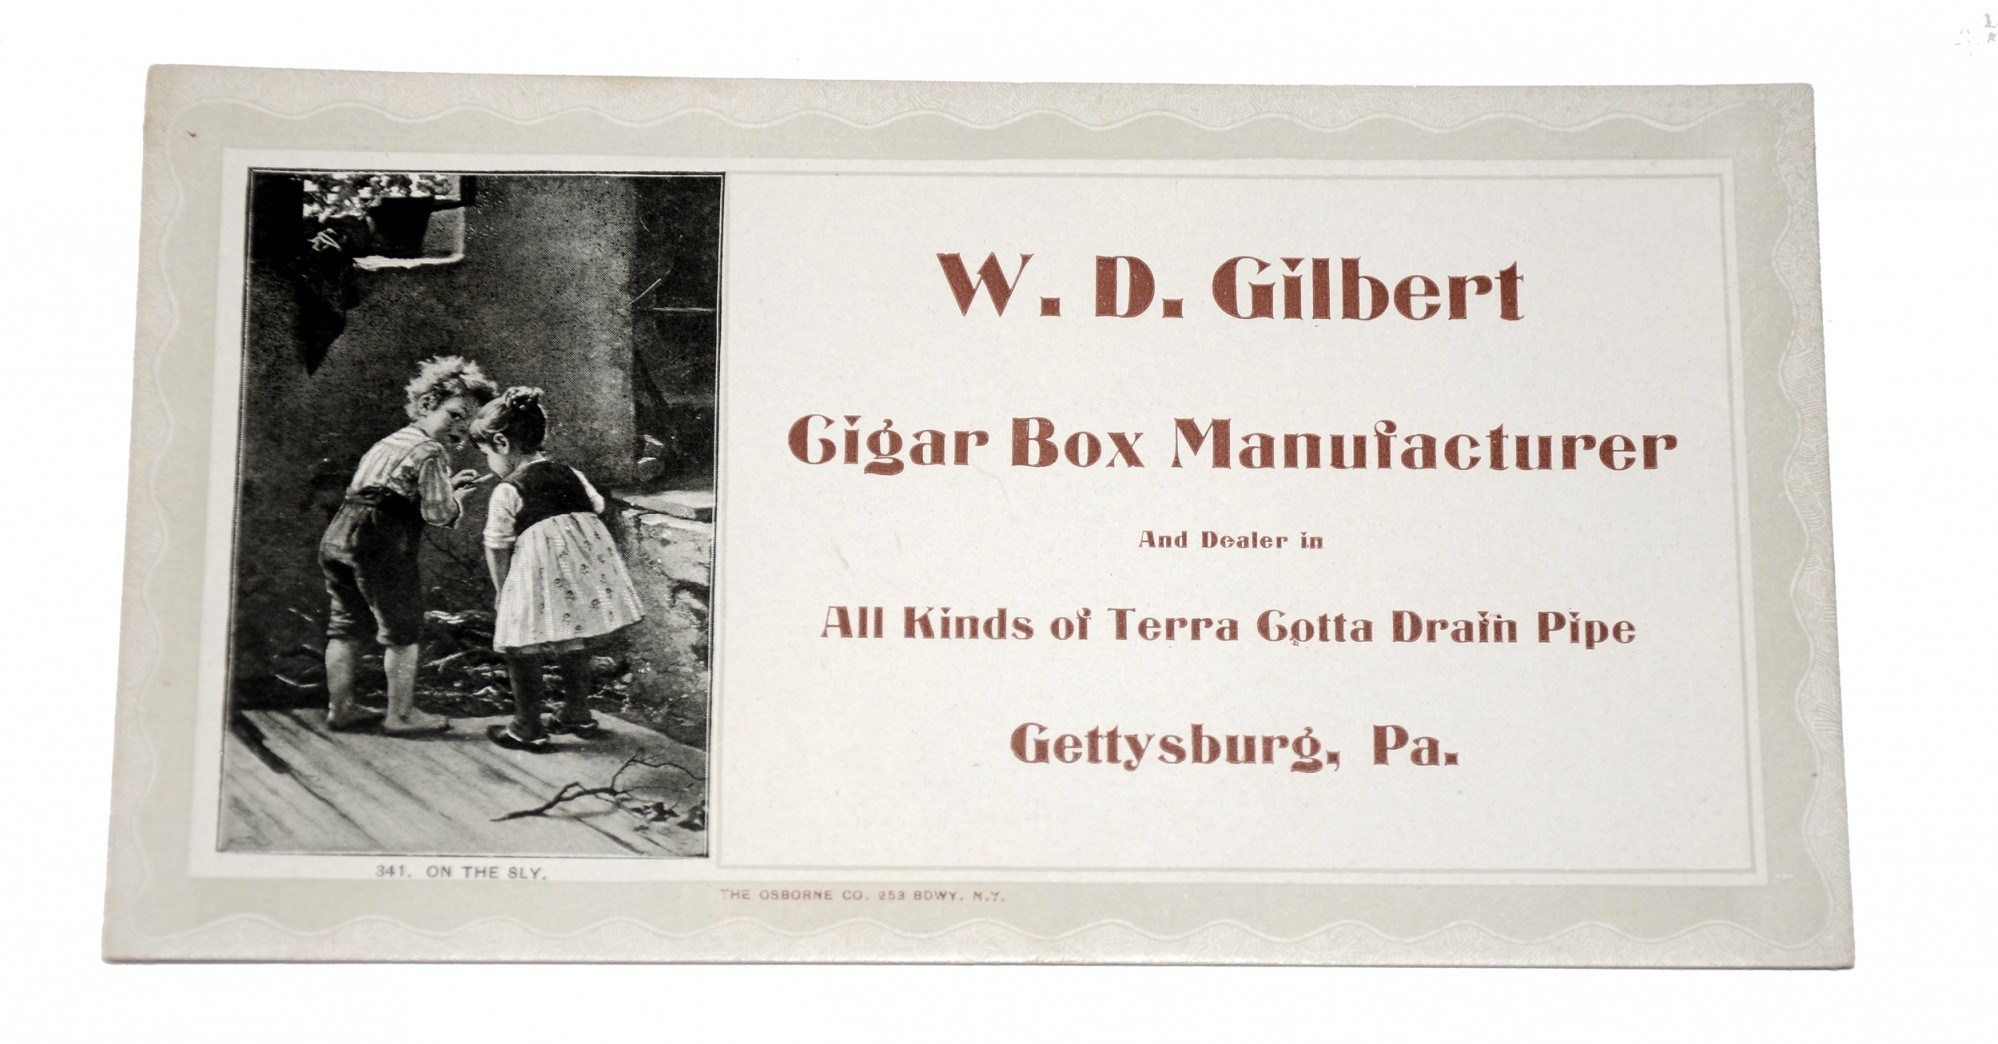 GETTYSBURG ADVERTISING CARD AND BLOTTER